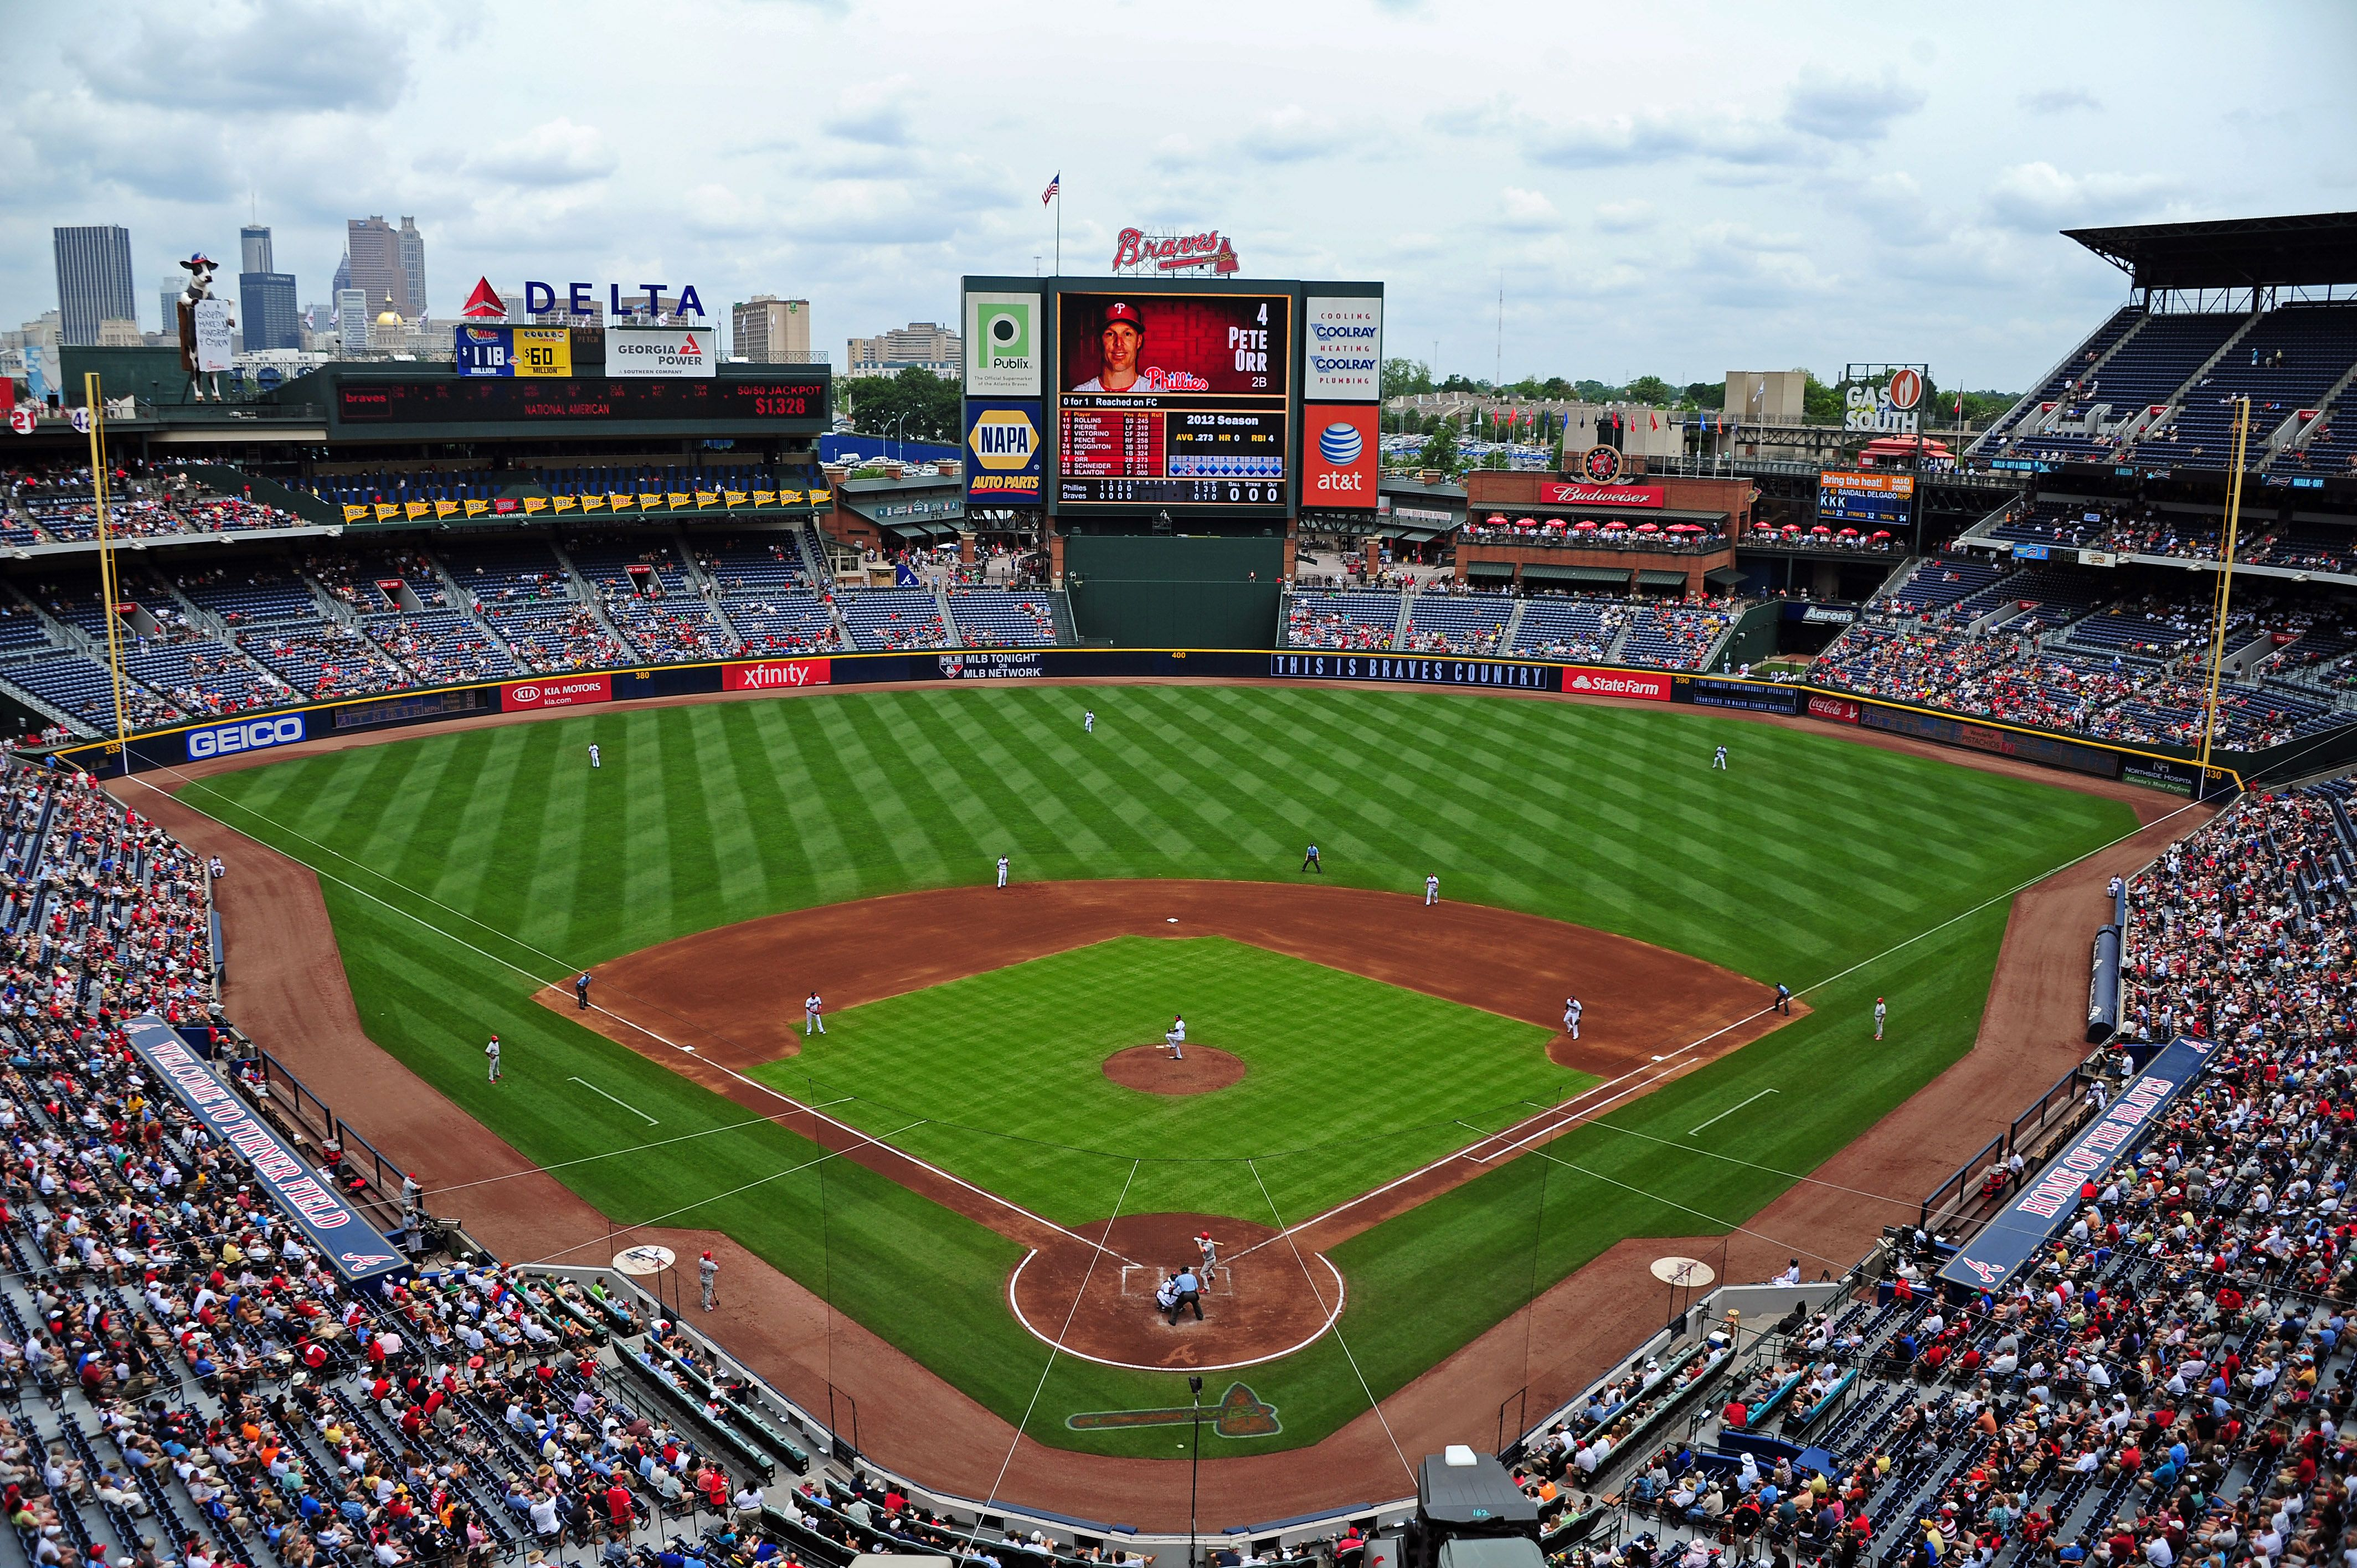 Turner Field Home To The Atlanta Braves Atlanta Braves Game Braves Baseball Atlanta Braves